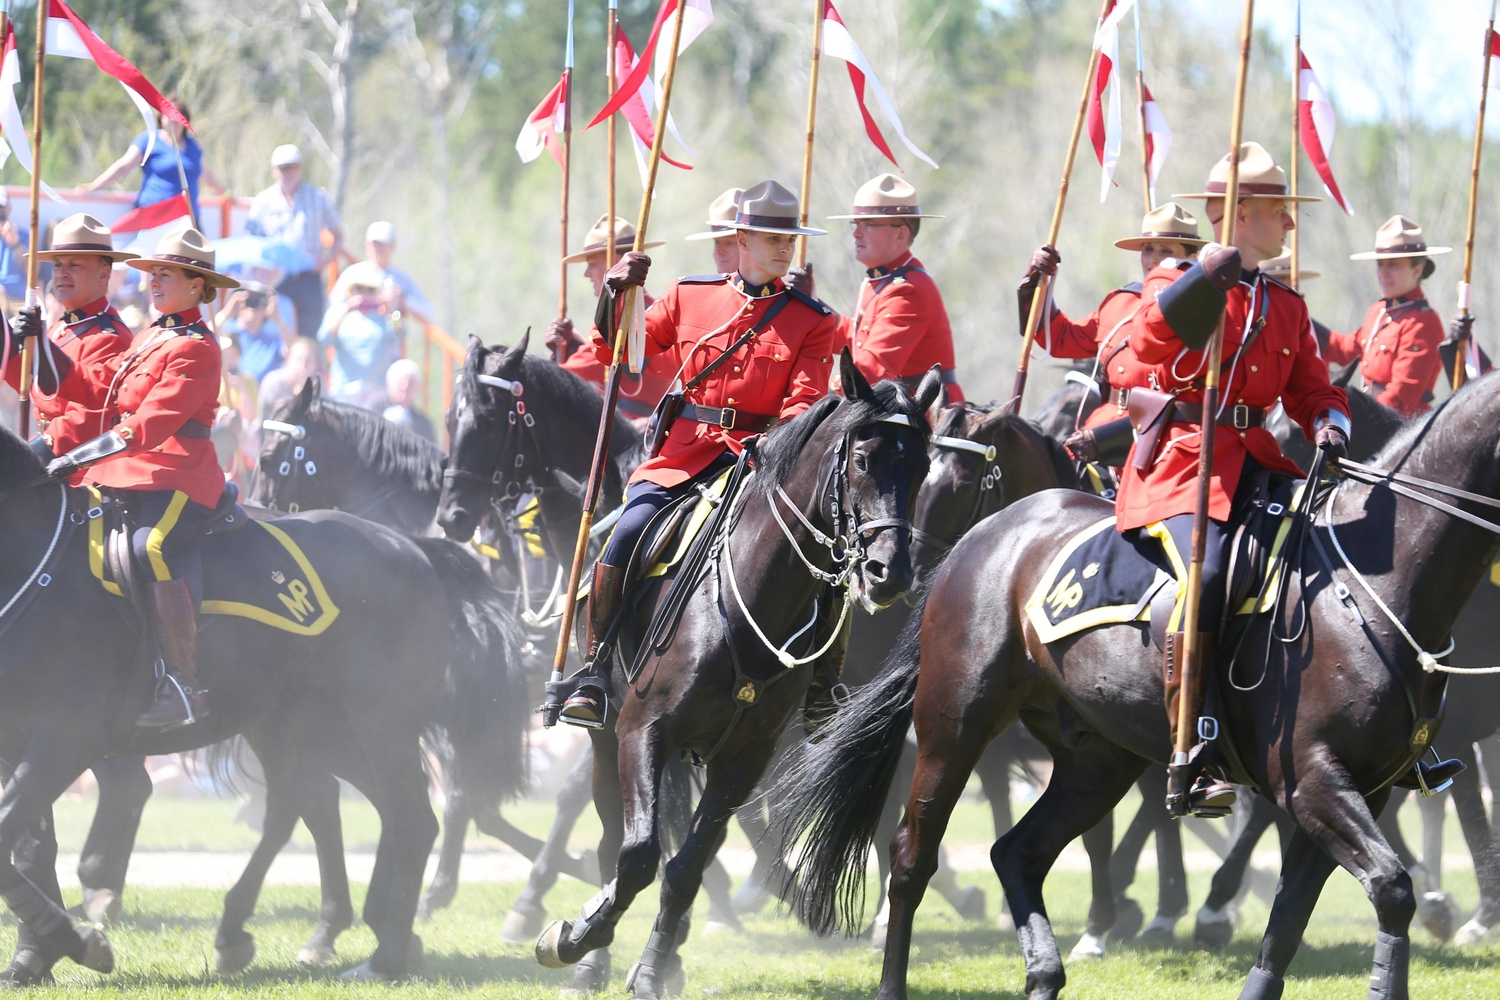 RCMP Musical Ride by Jess McShane